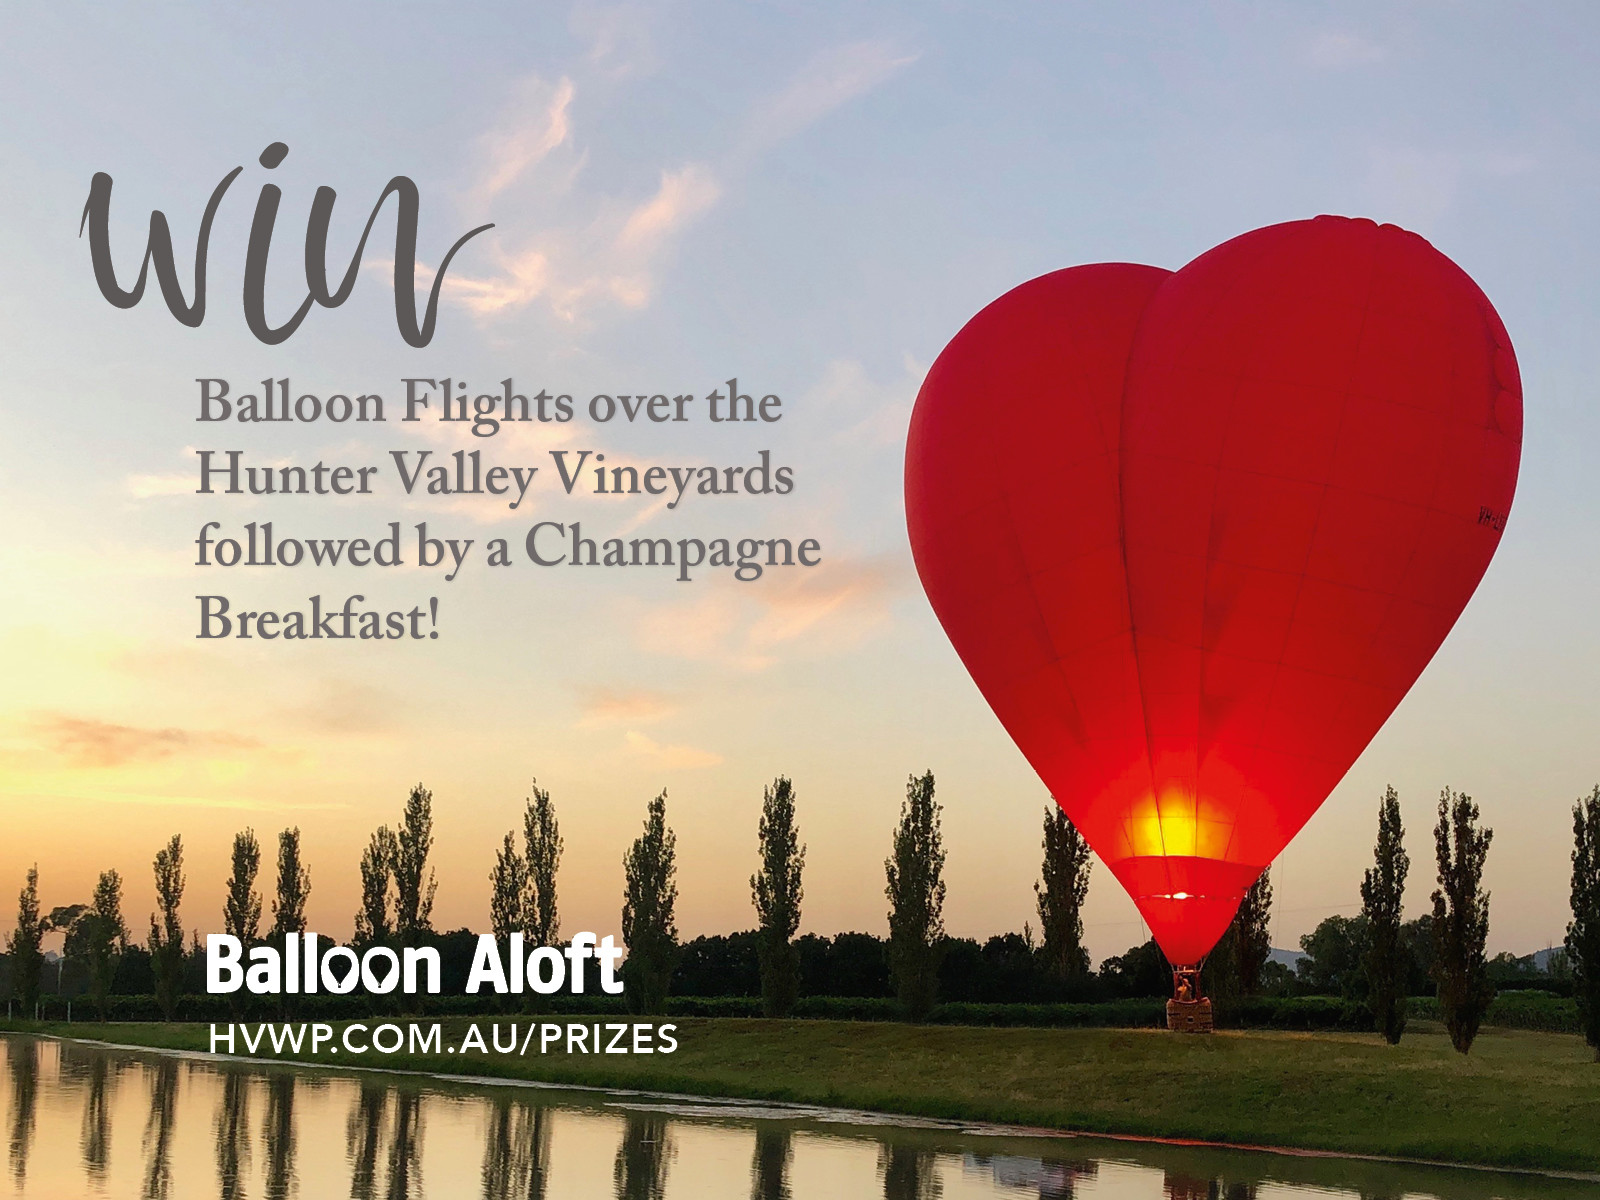 WIN Hot Air Balloon Flights with Balloon Aloft